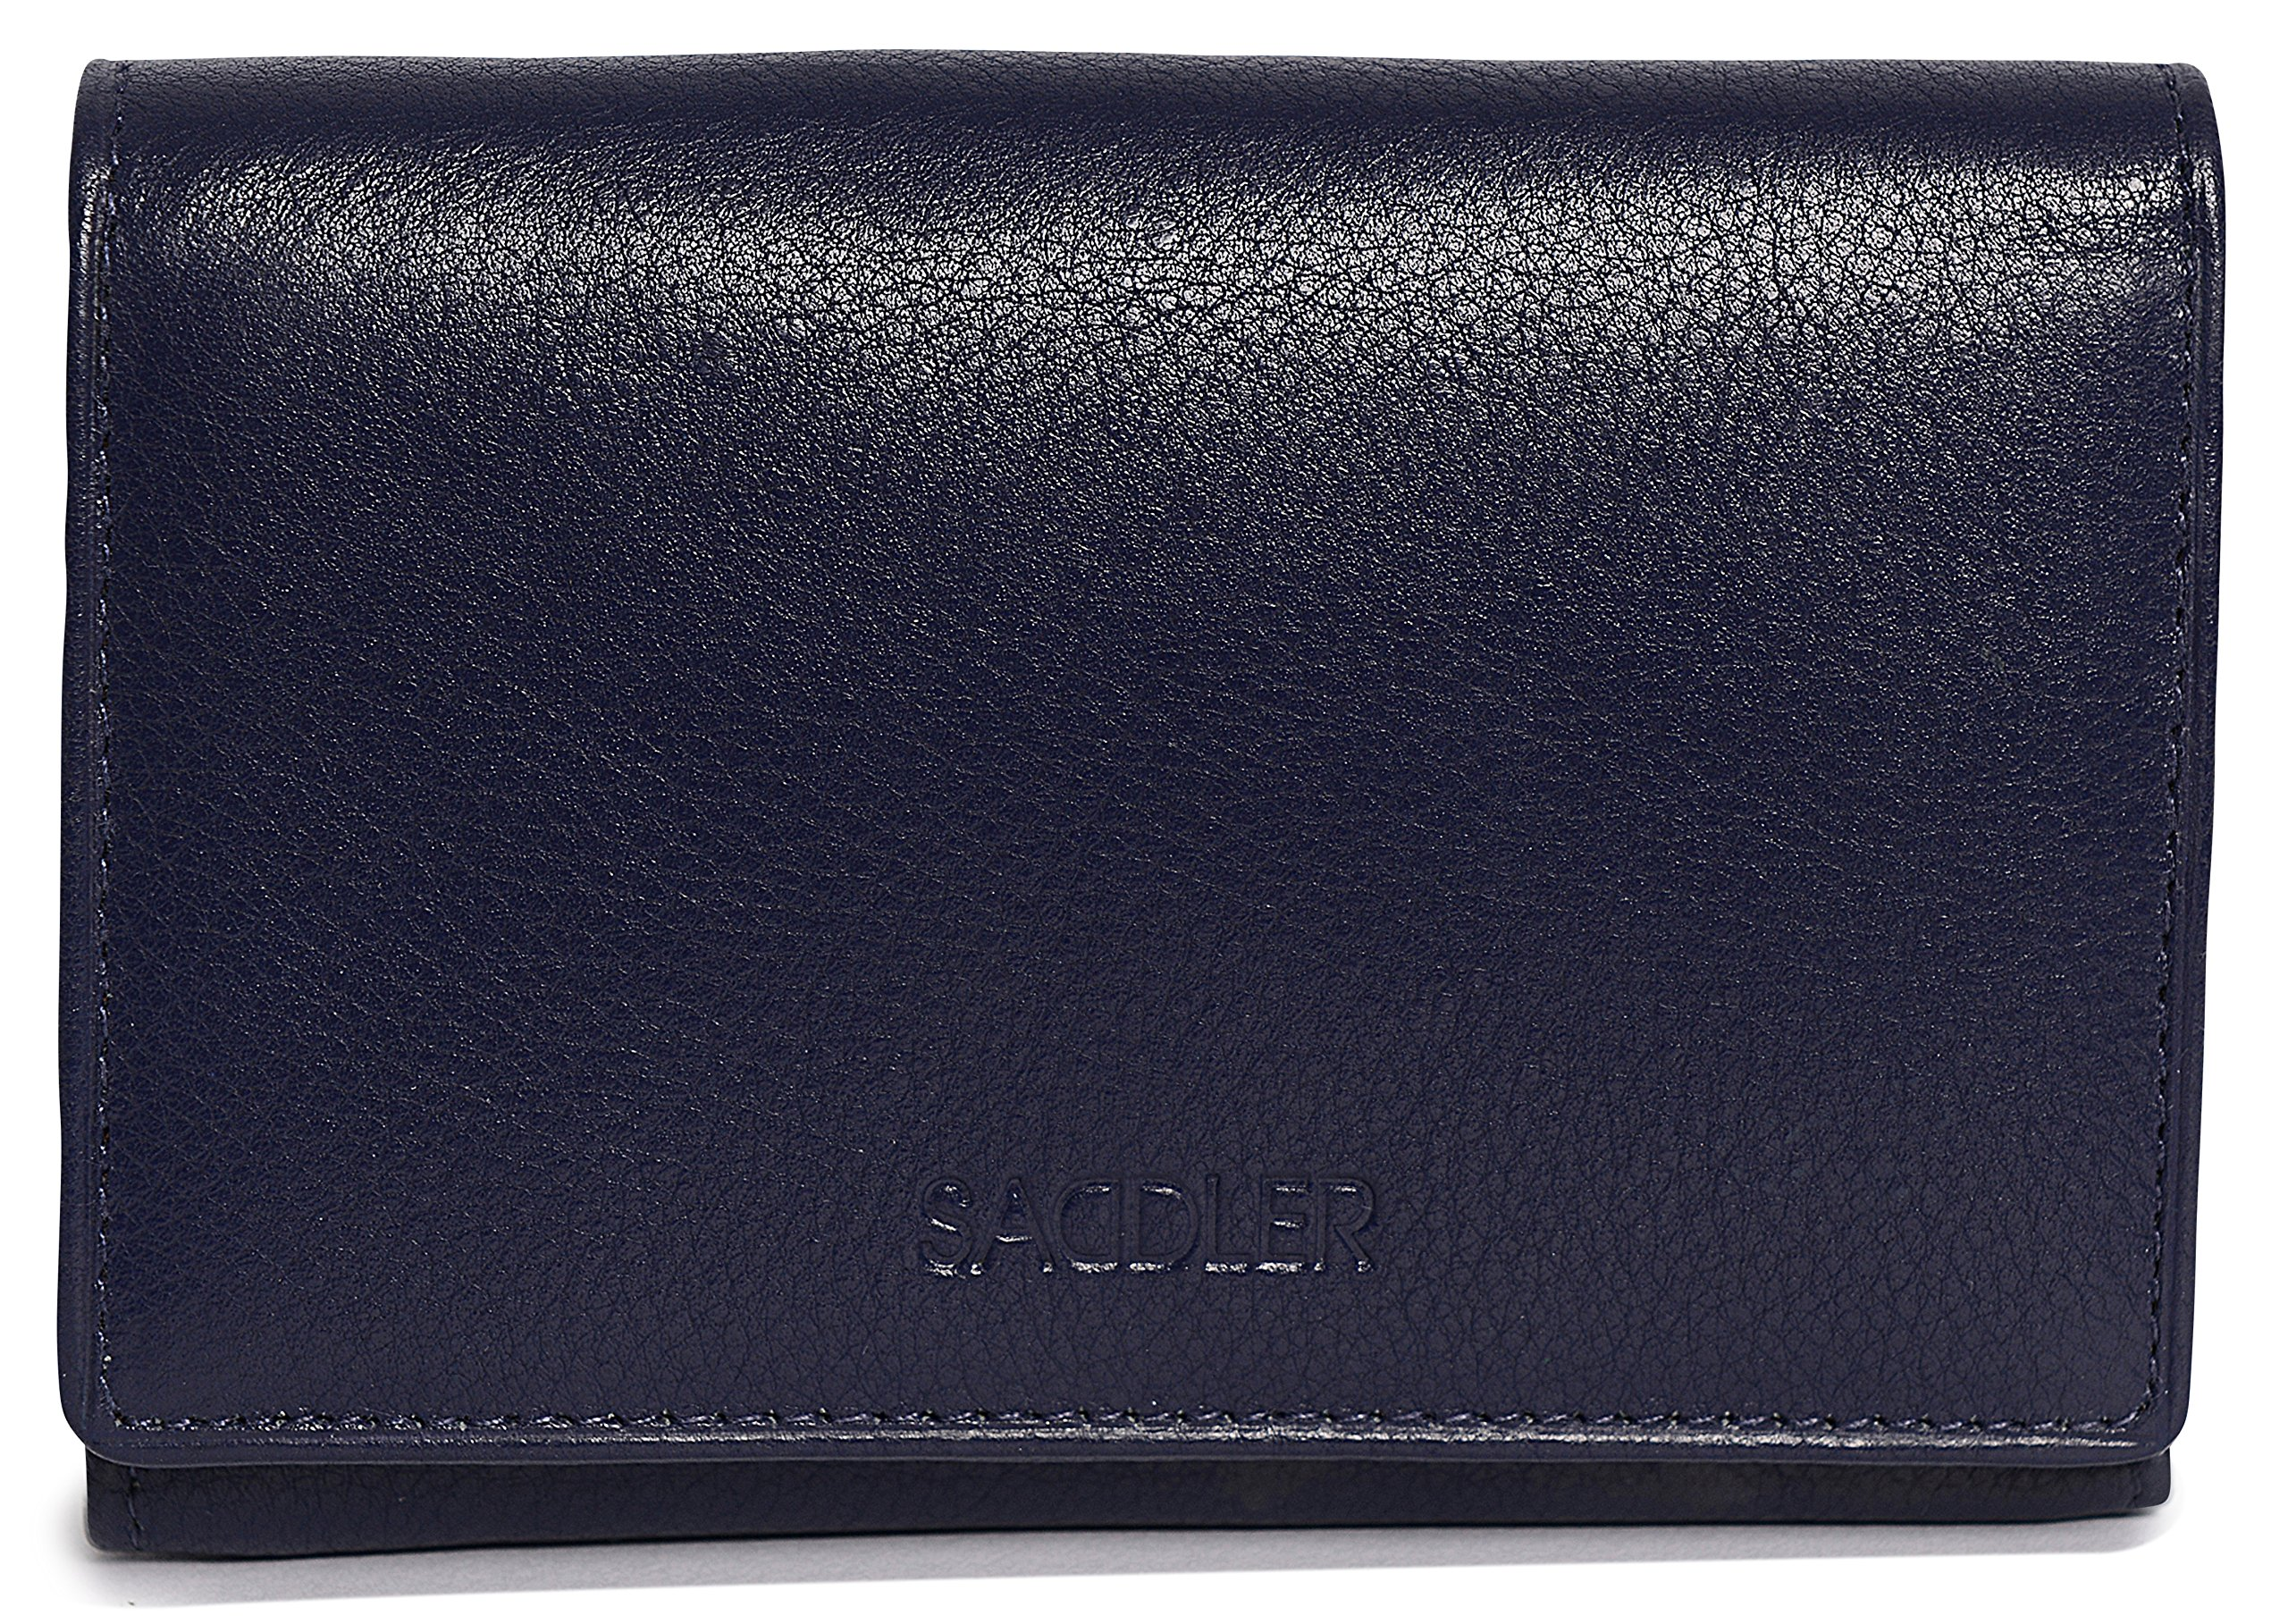 SADDLER Womens Leather Double Flap Coin Purse Trifold Wallet - Peacoat Blue by Saddler (Image #2)